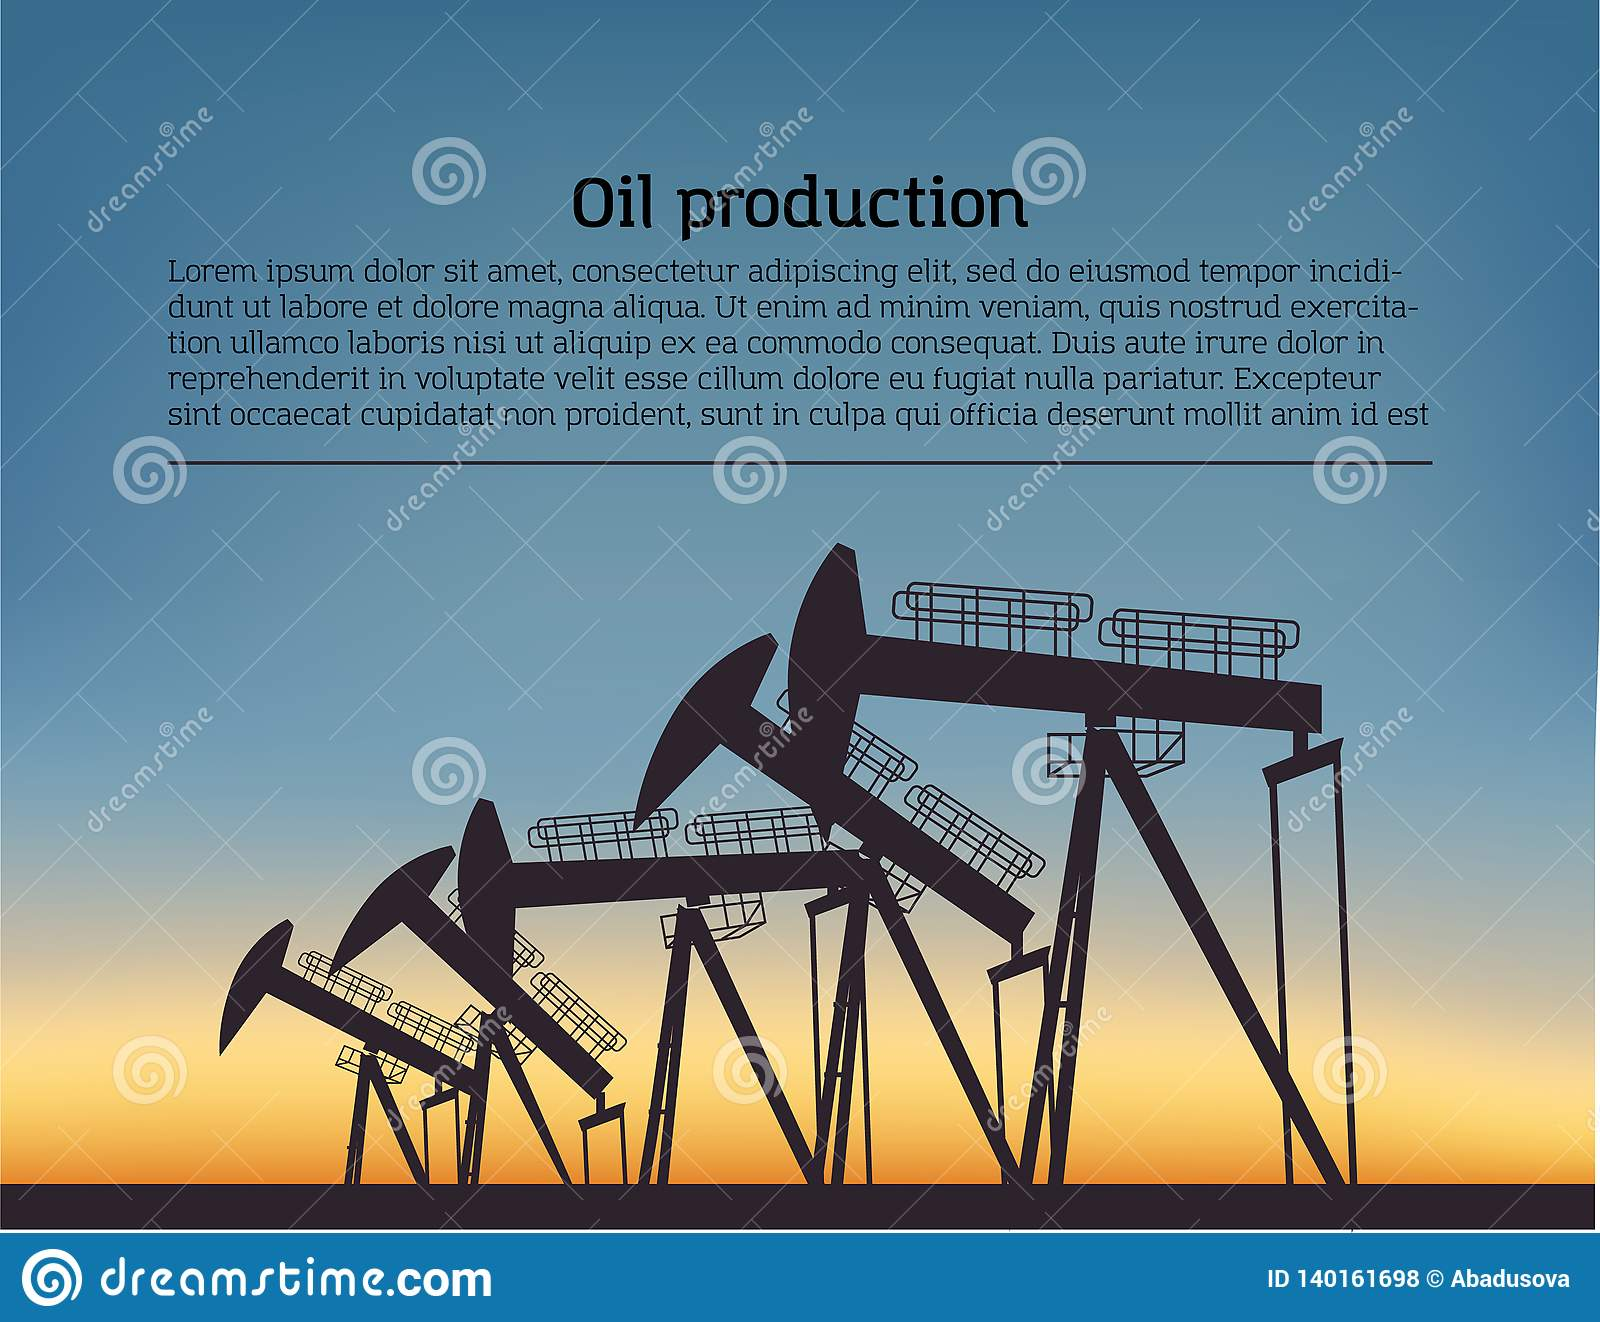 Oil producing Rig silouette. Black pictogram on color background. Vector illustration with text